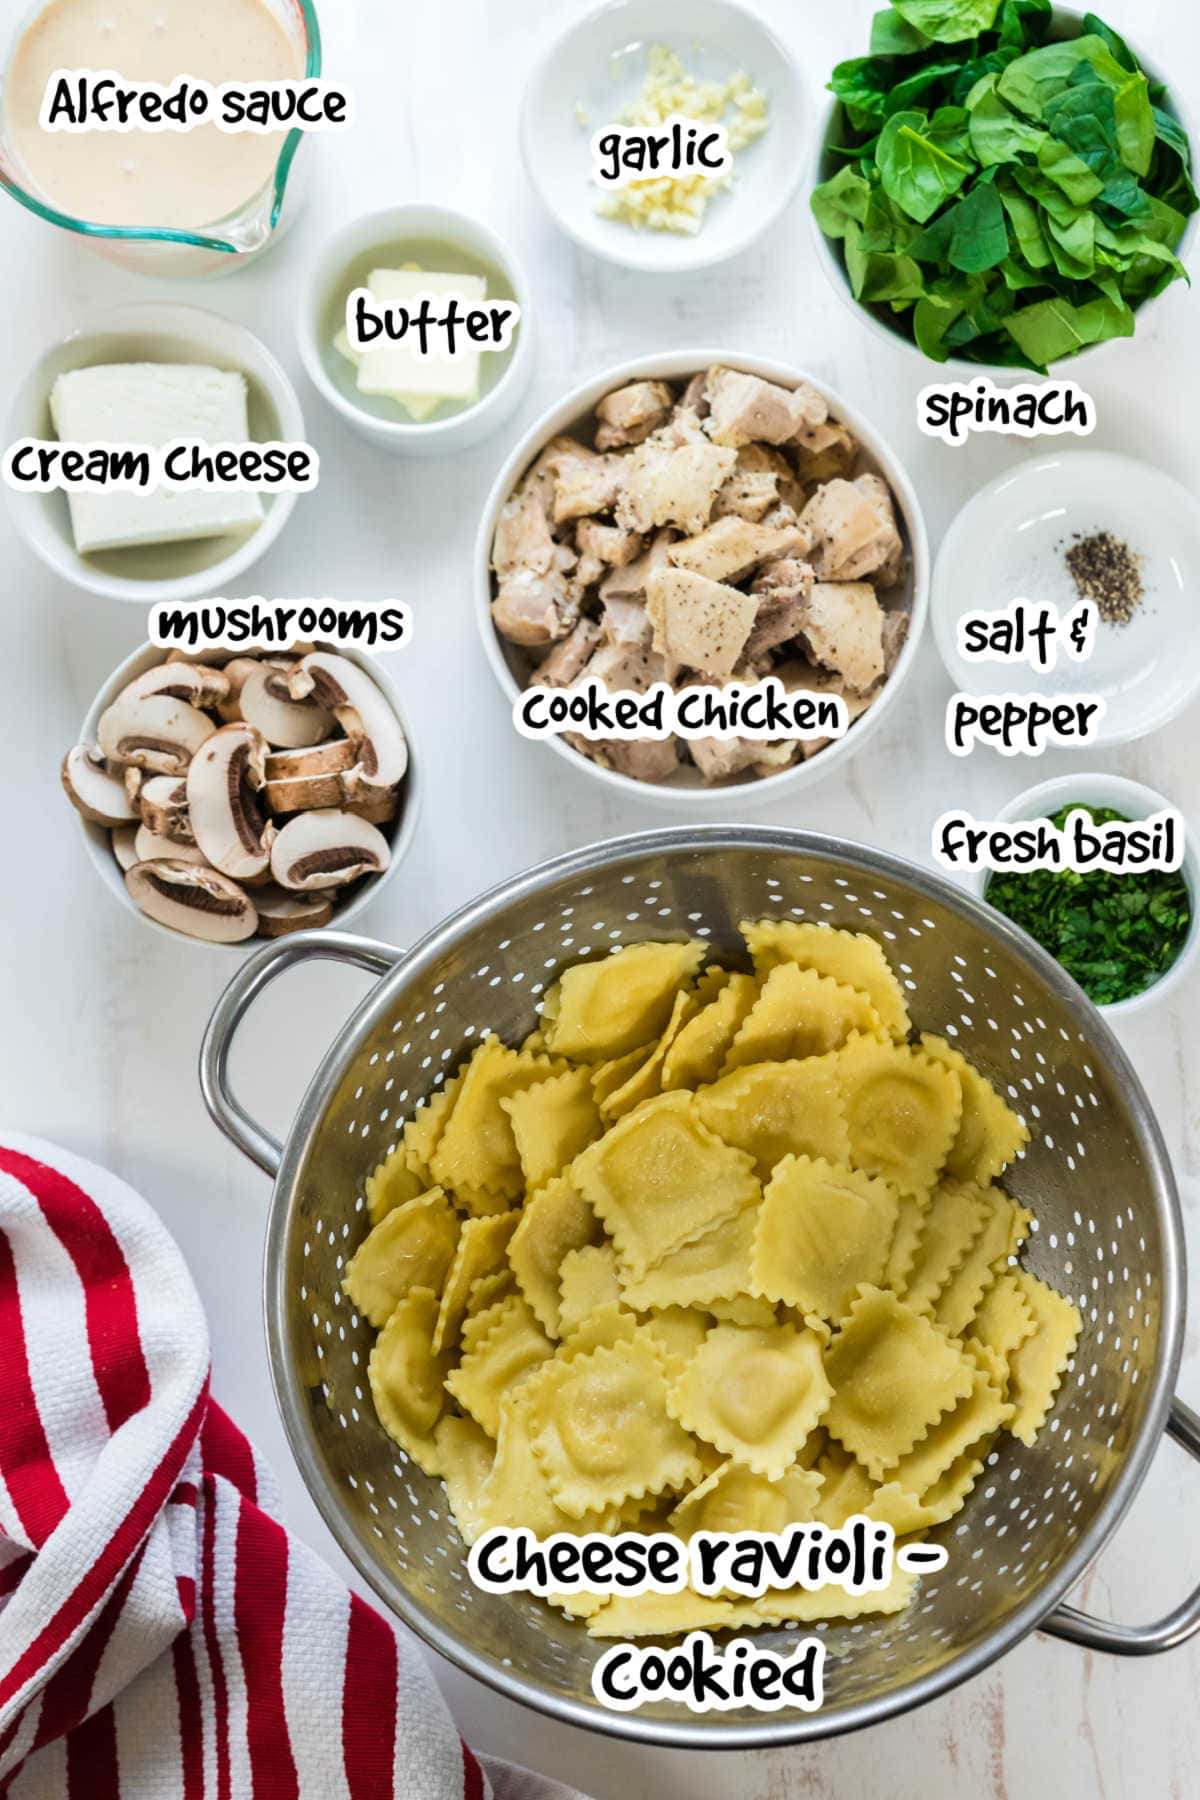 Labeled ingredients for the chicken Alfredo ravioli recipe.